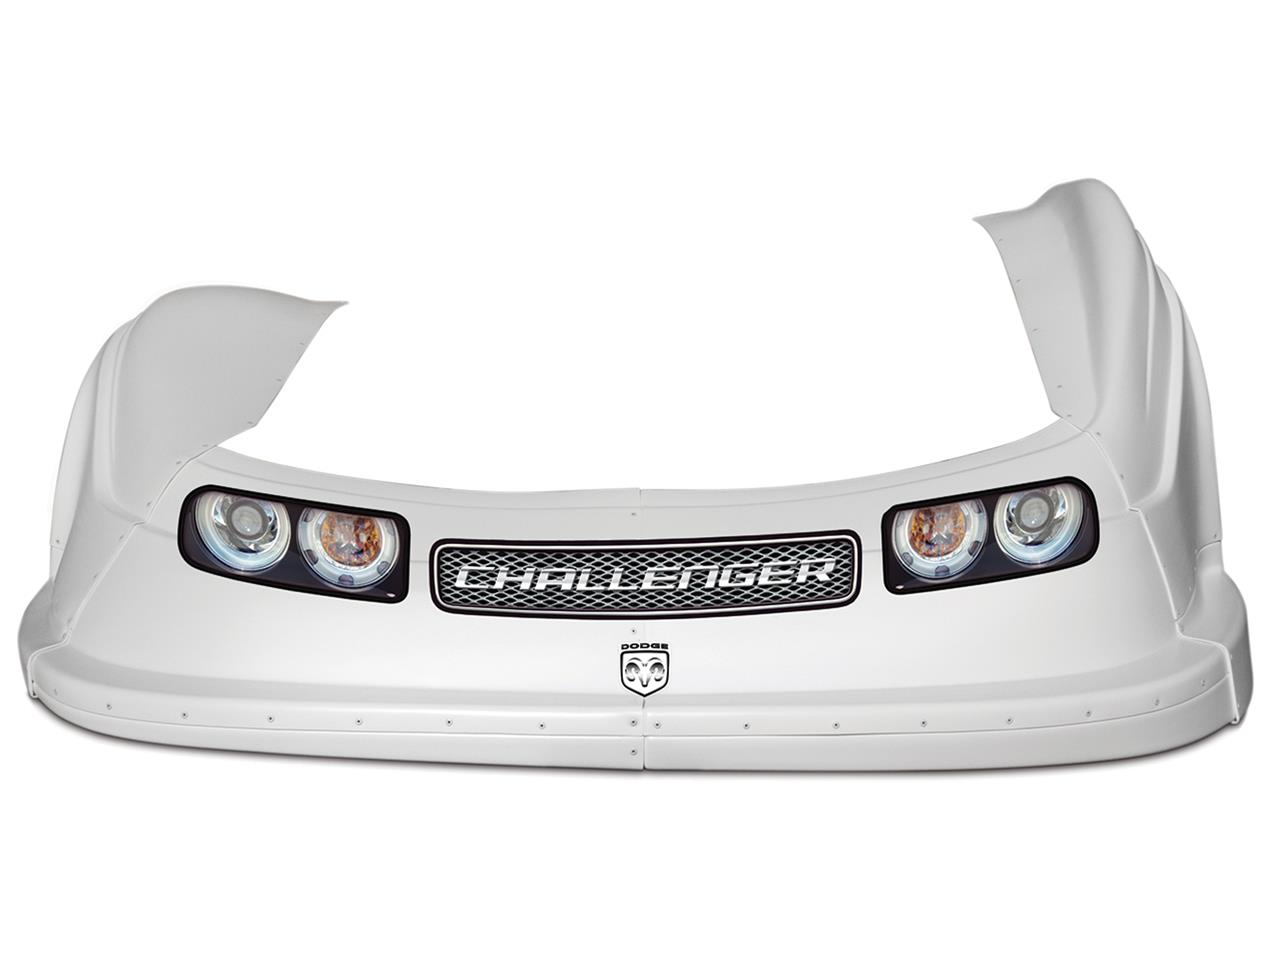 Picture of MD3 Evolution 2 Nose Kit - (Challenger)